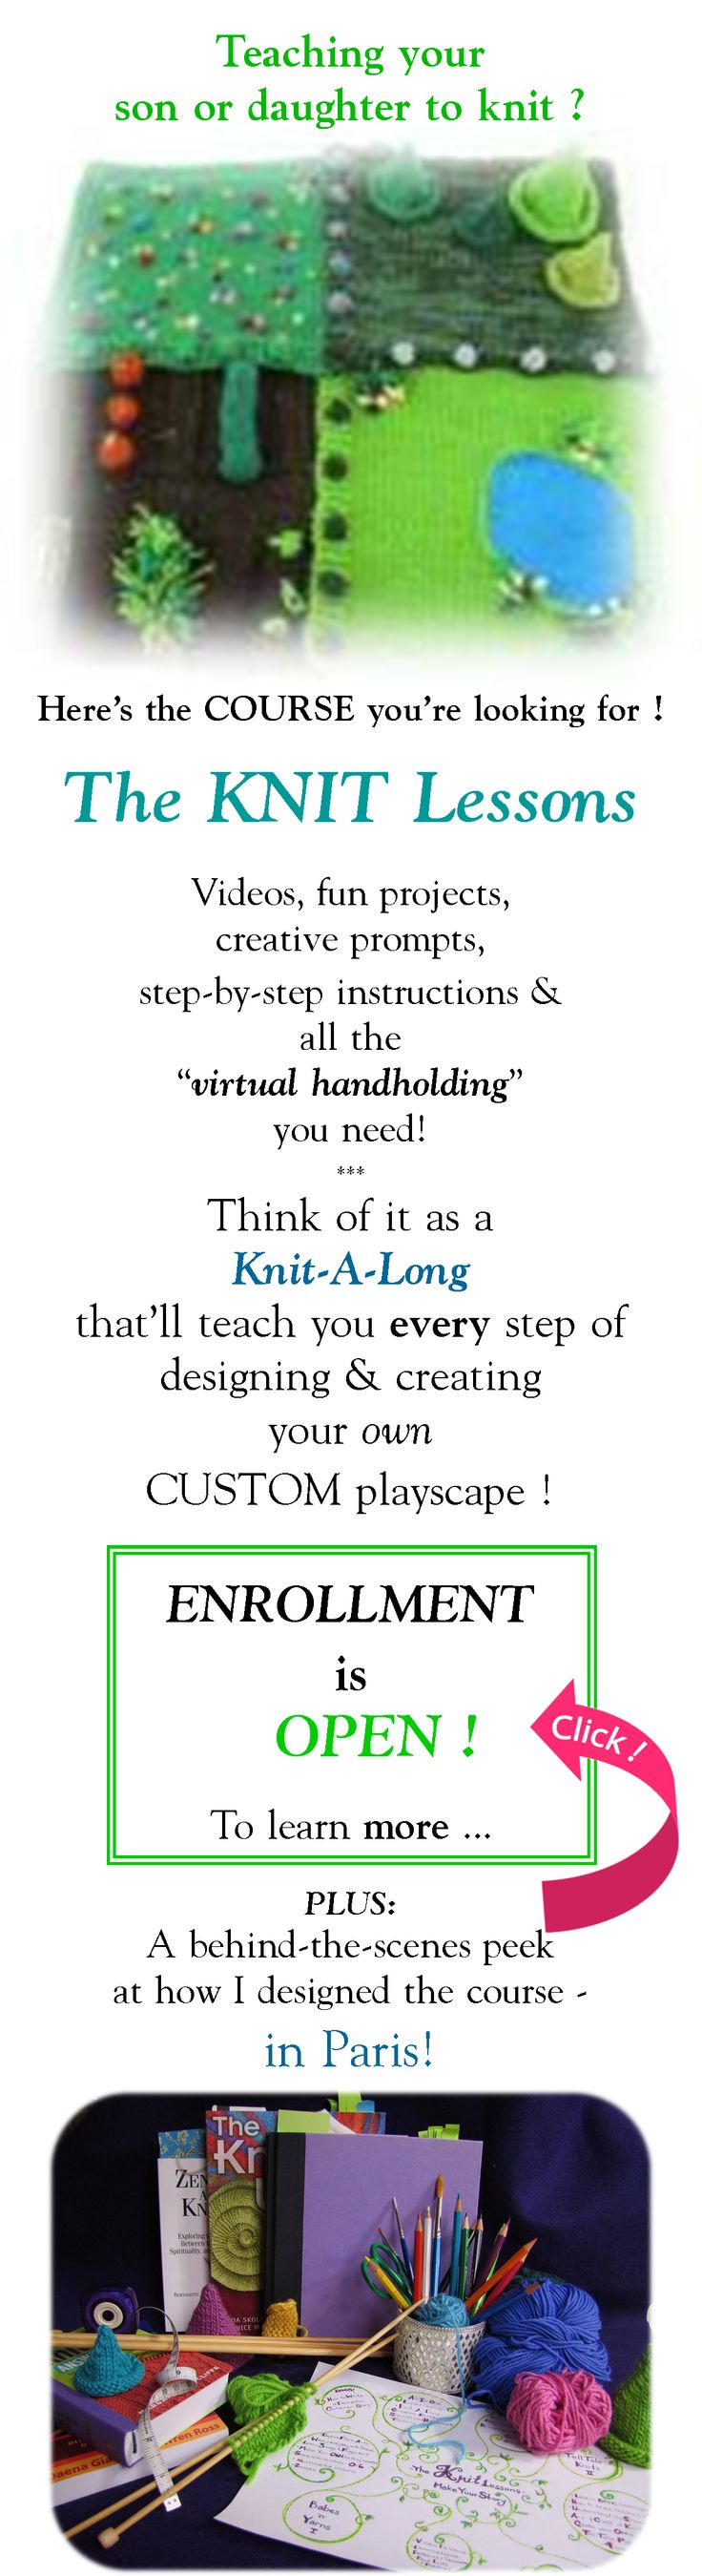 Knitting Worksheets : The knit lessons an online course that will teach you